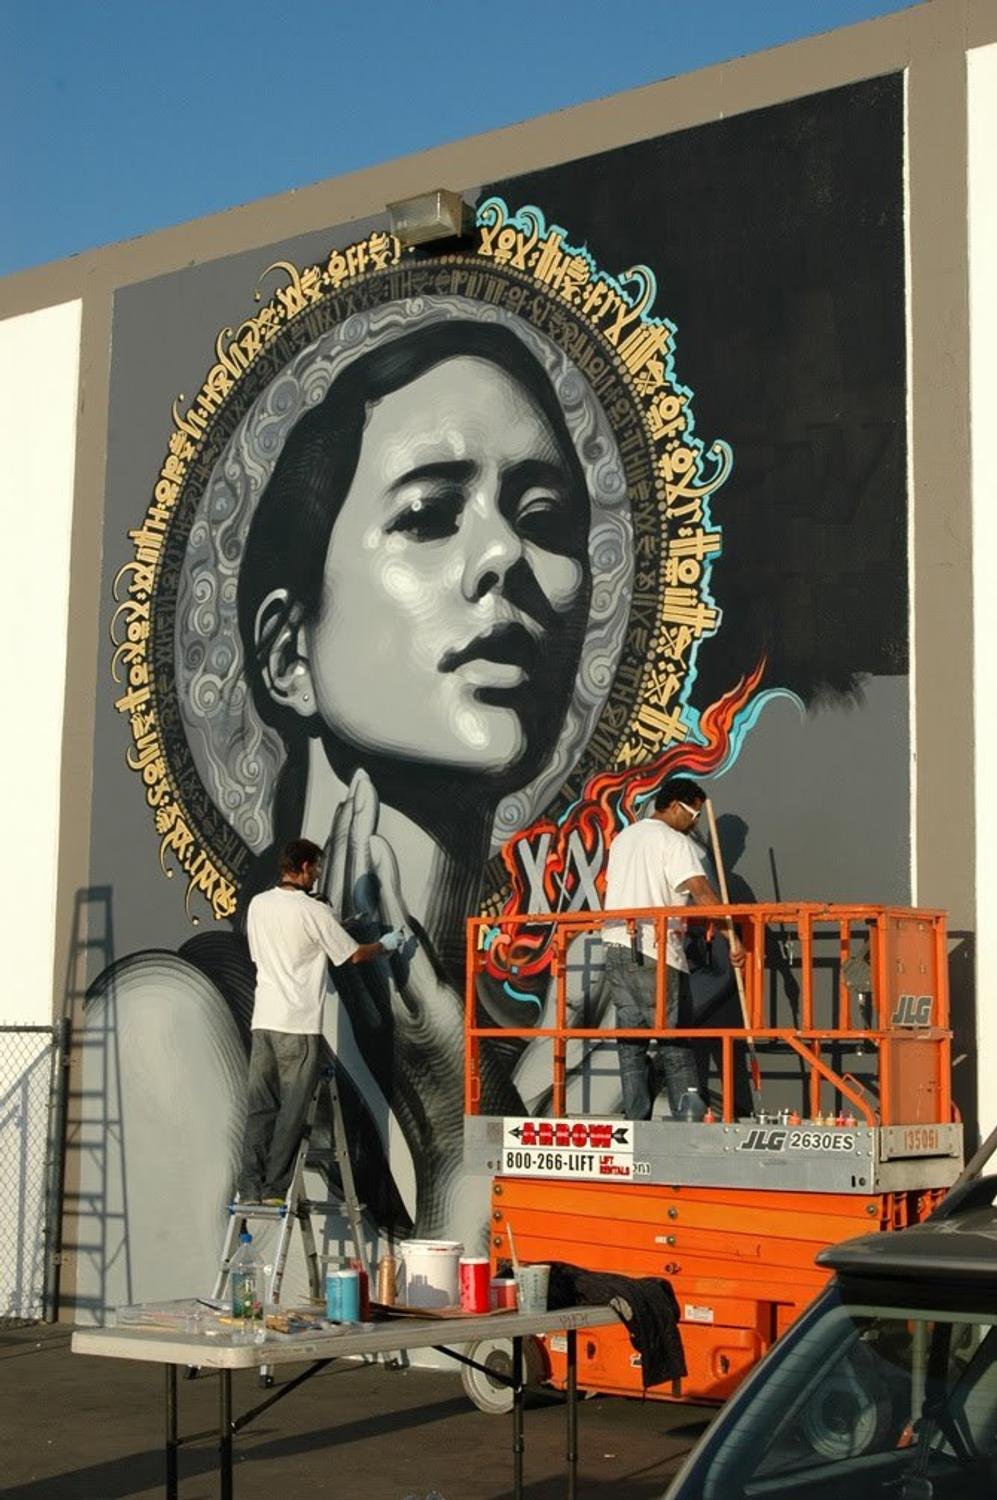 legendary street artists mear one  kofie  retna  and el mac give live art performance daily at